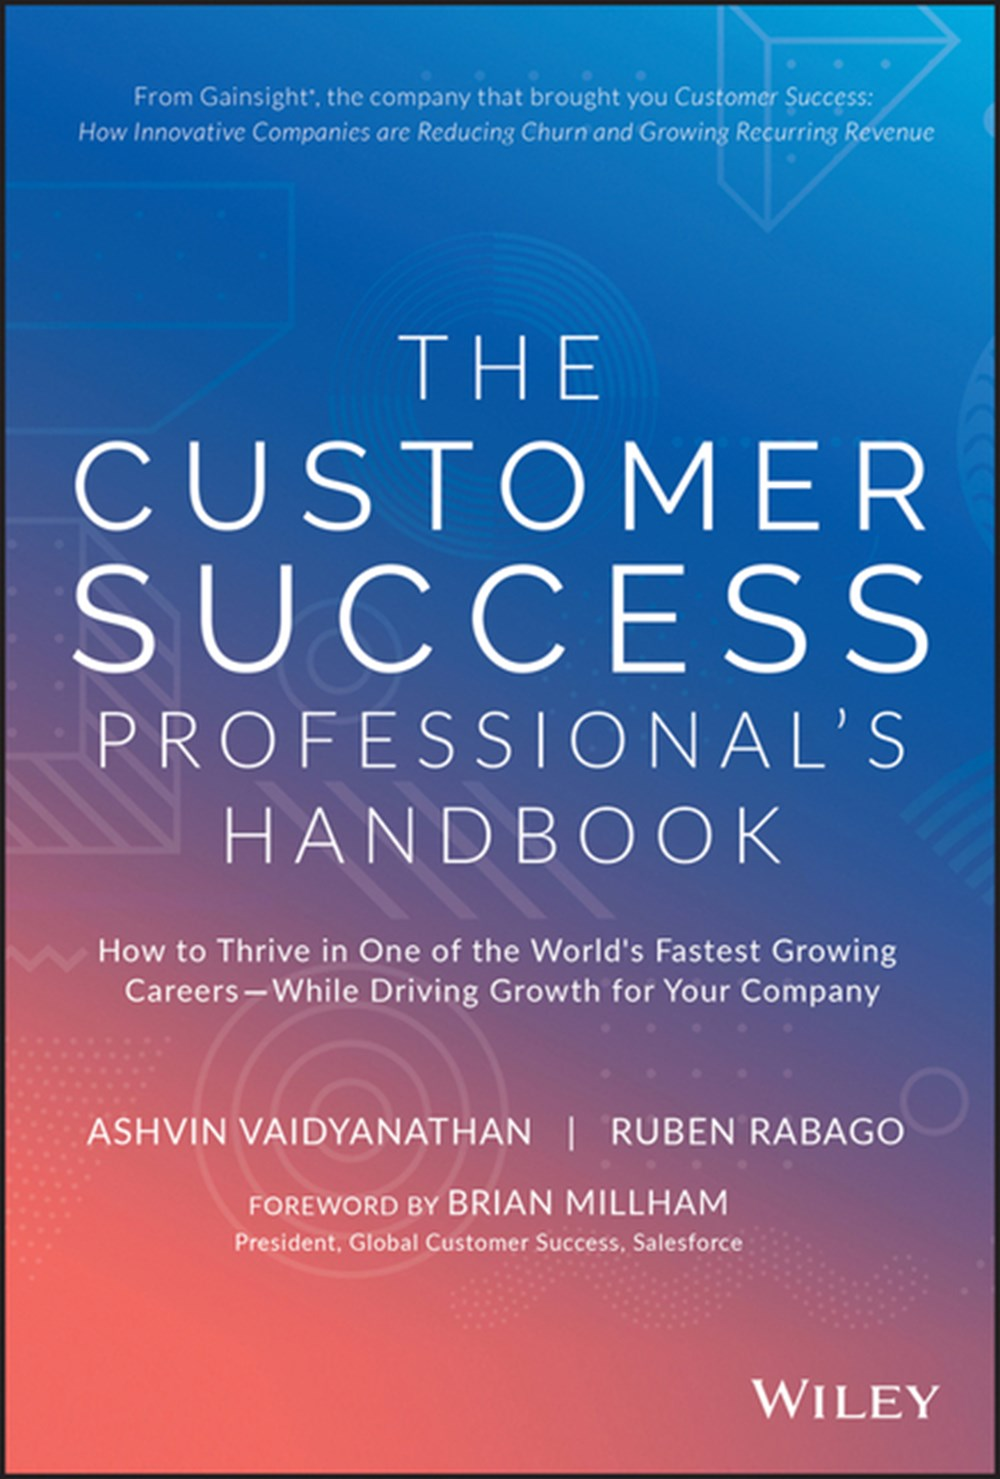 Customer Success Professional's Handbook How to Thrive in One of the World's Fastest Growing Careers